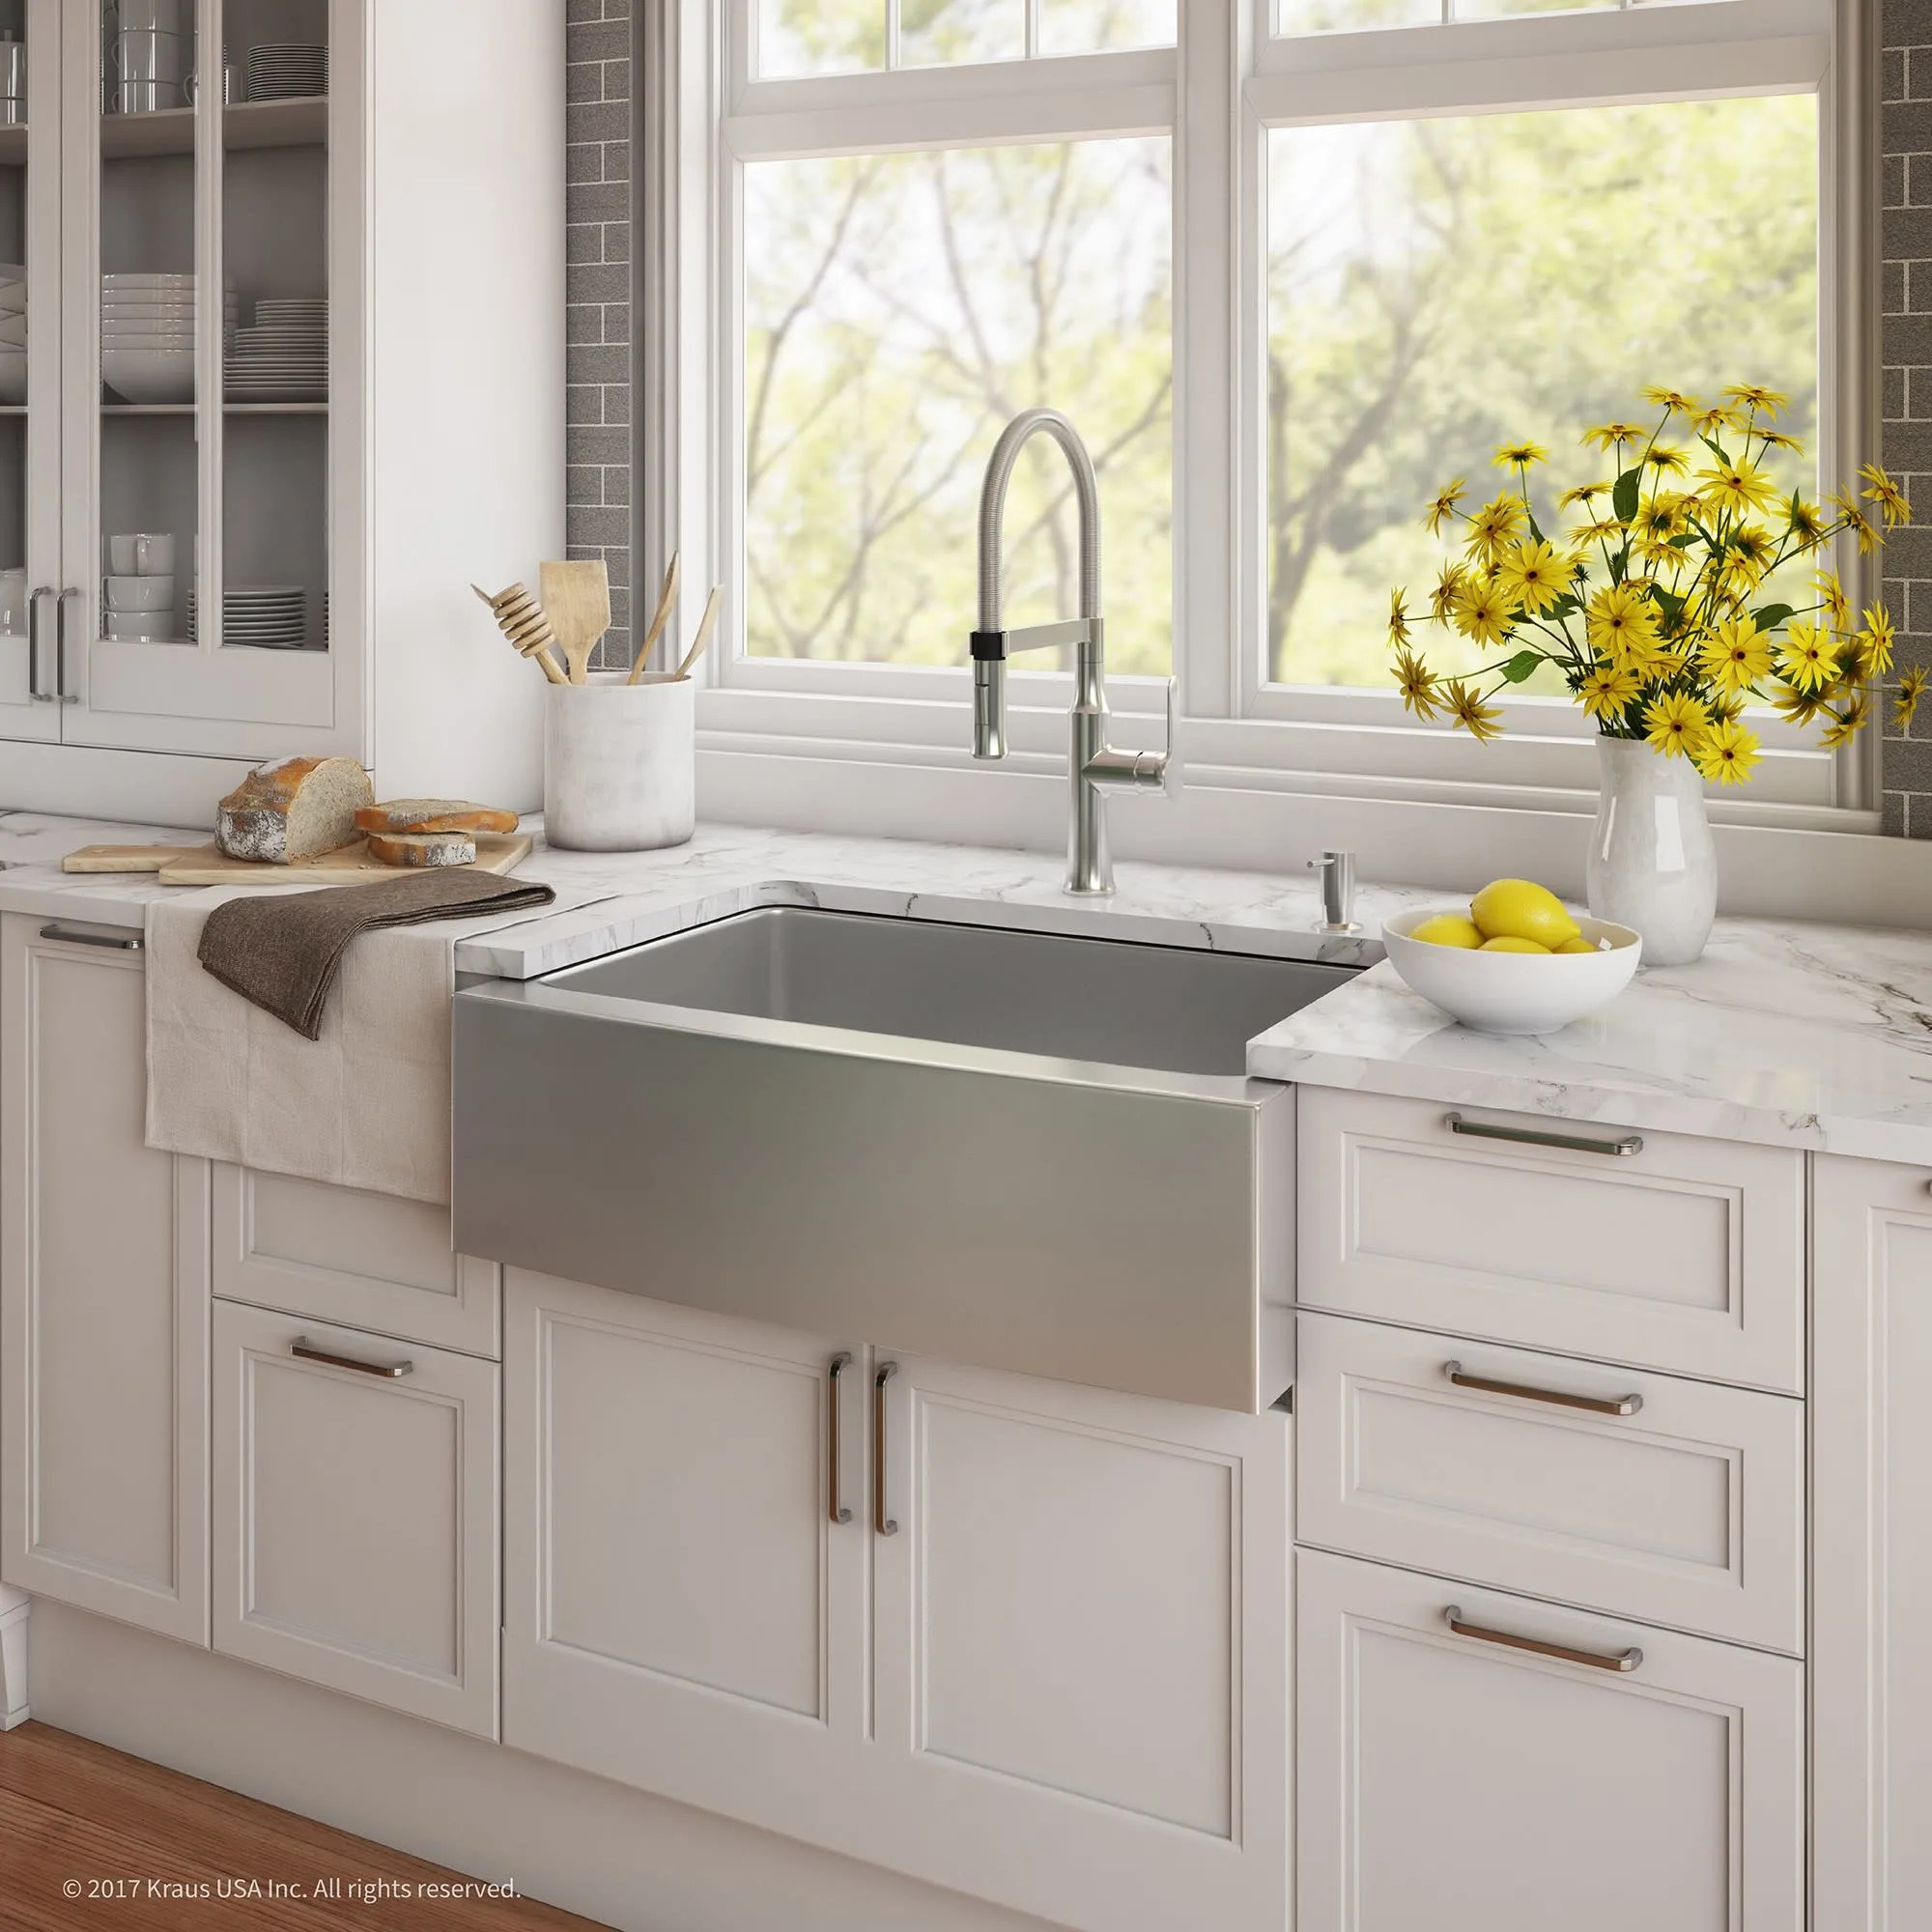 kraus khf200 30 1640 42ch 29 3 4 kitchen sink combo with chrome faucet and soap dispenser